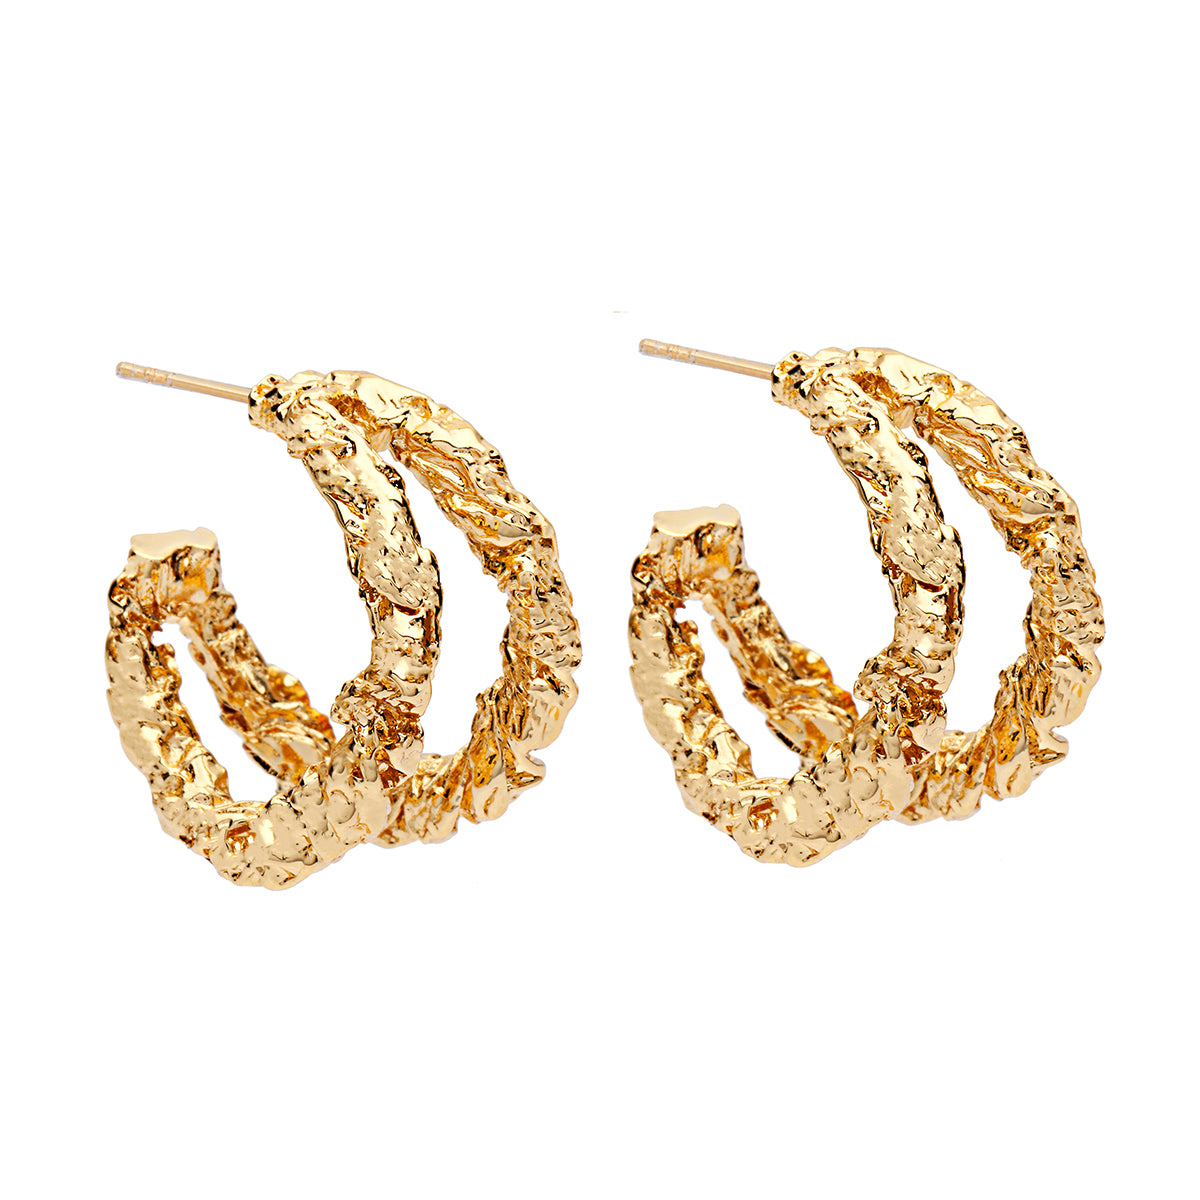 Amber Sceats Monroe Earrings in Gold